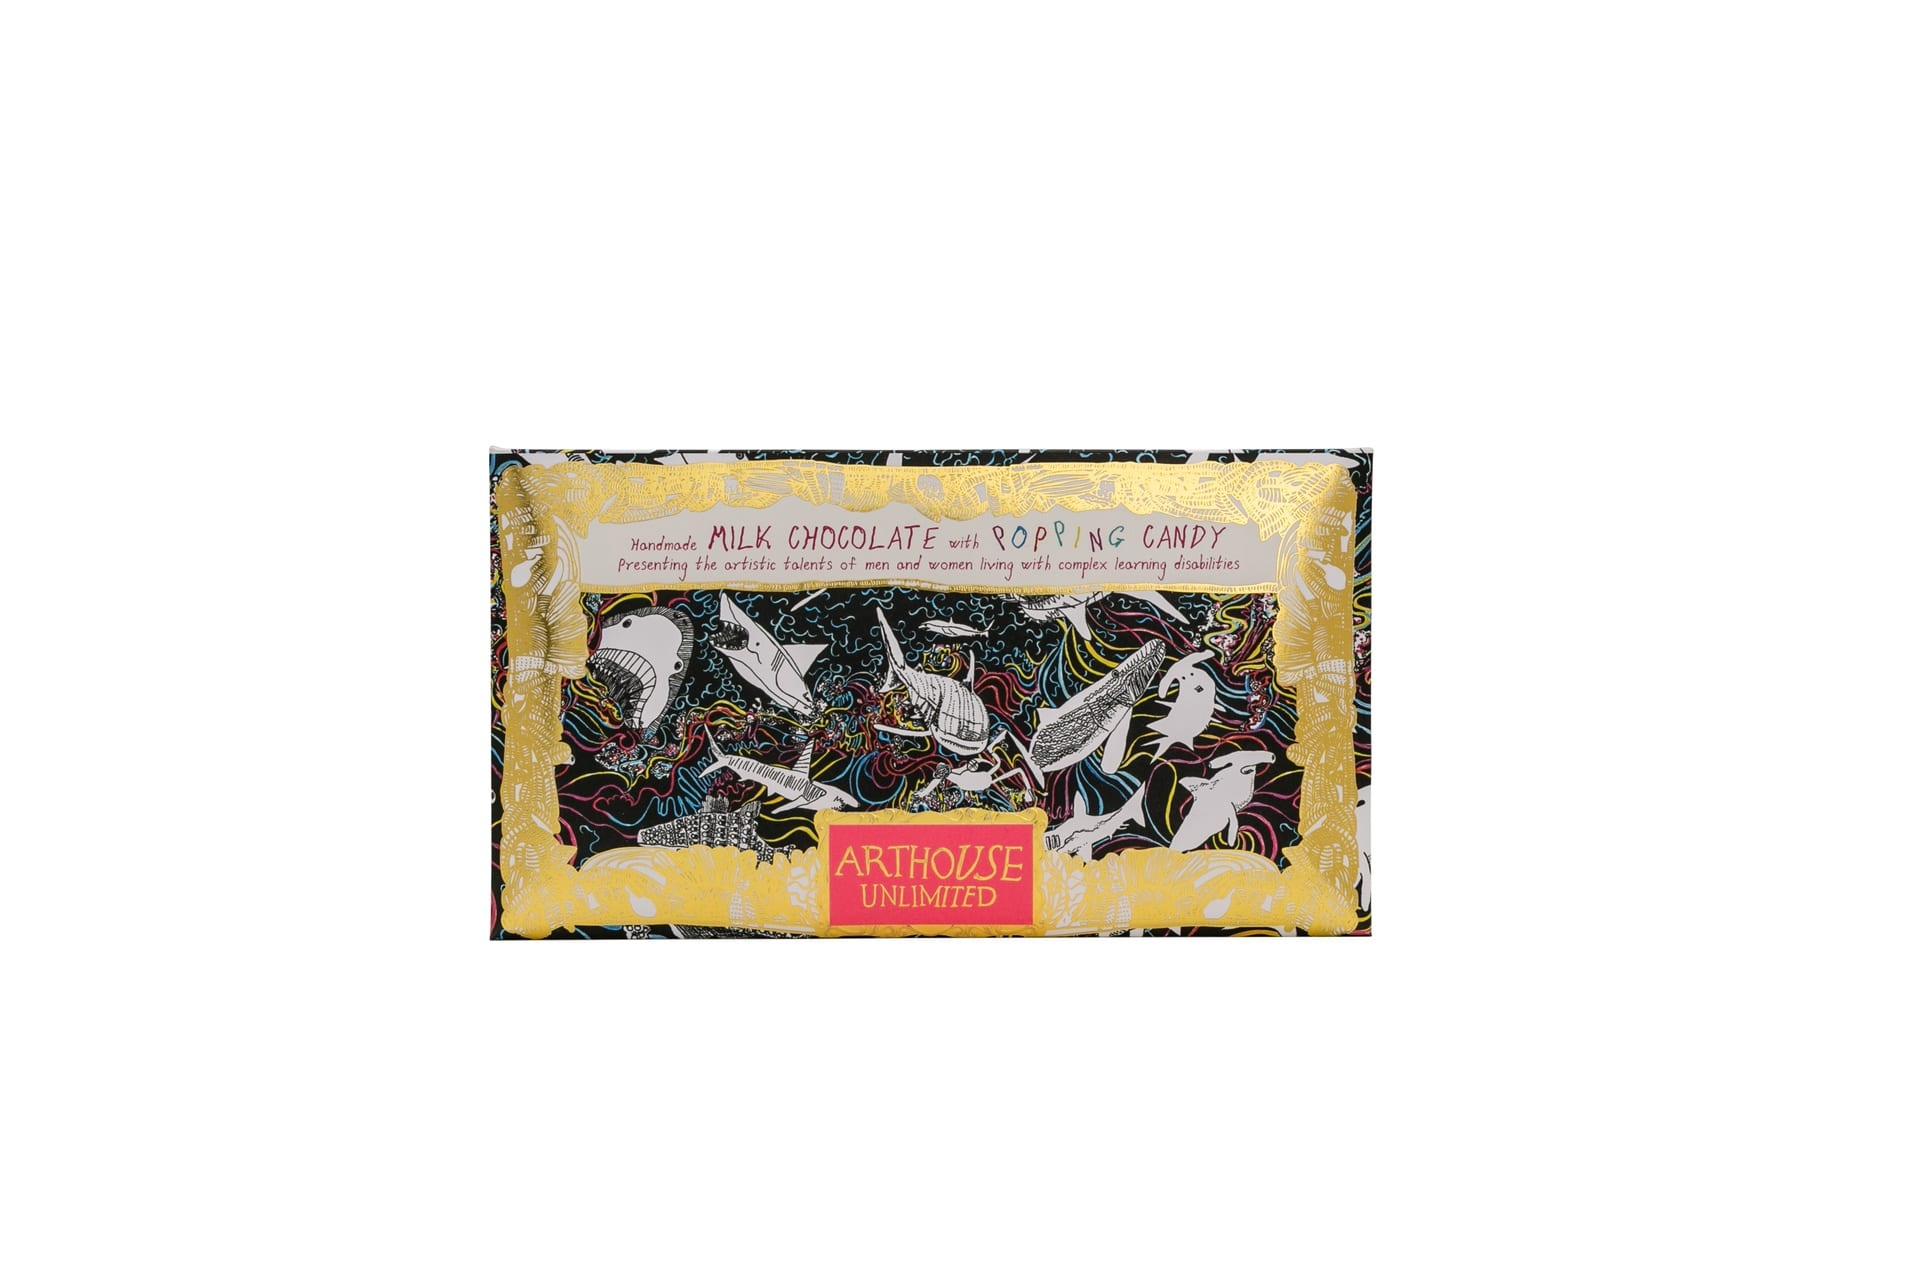 Arthouse Unlimited Milk Chocolate bar with popping candy shark design